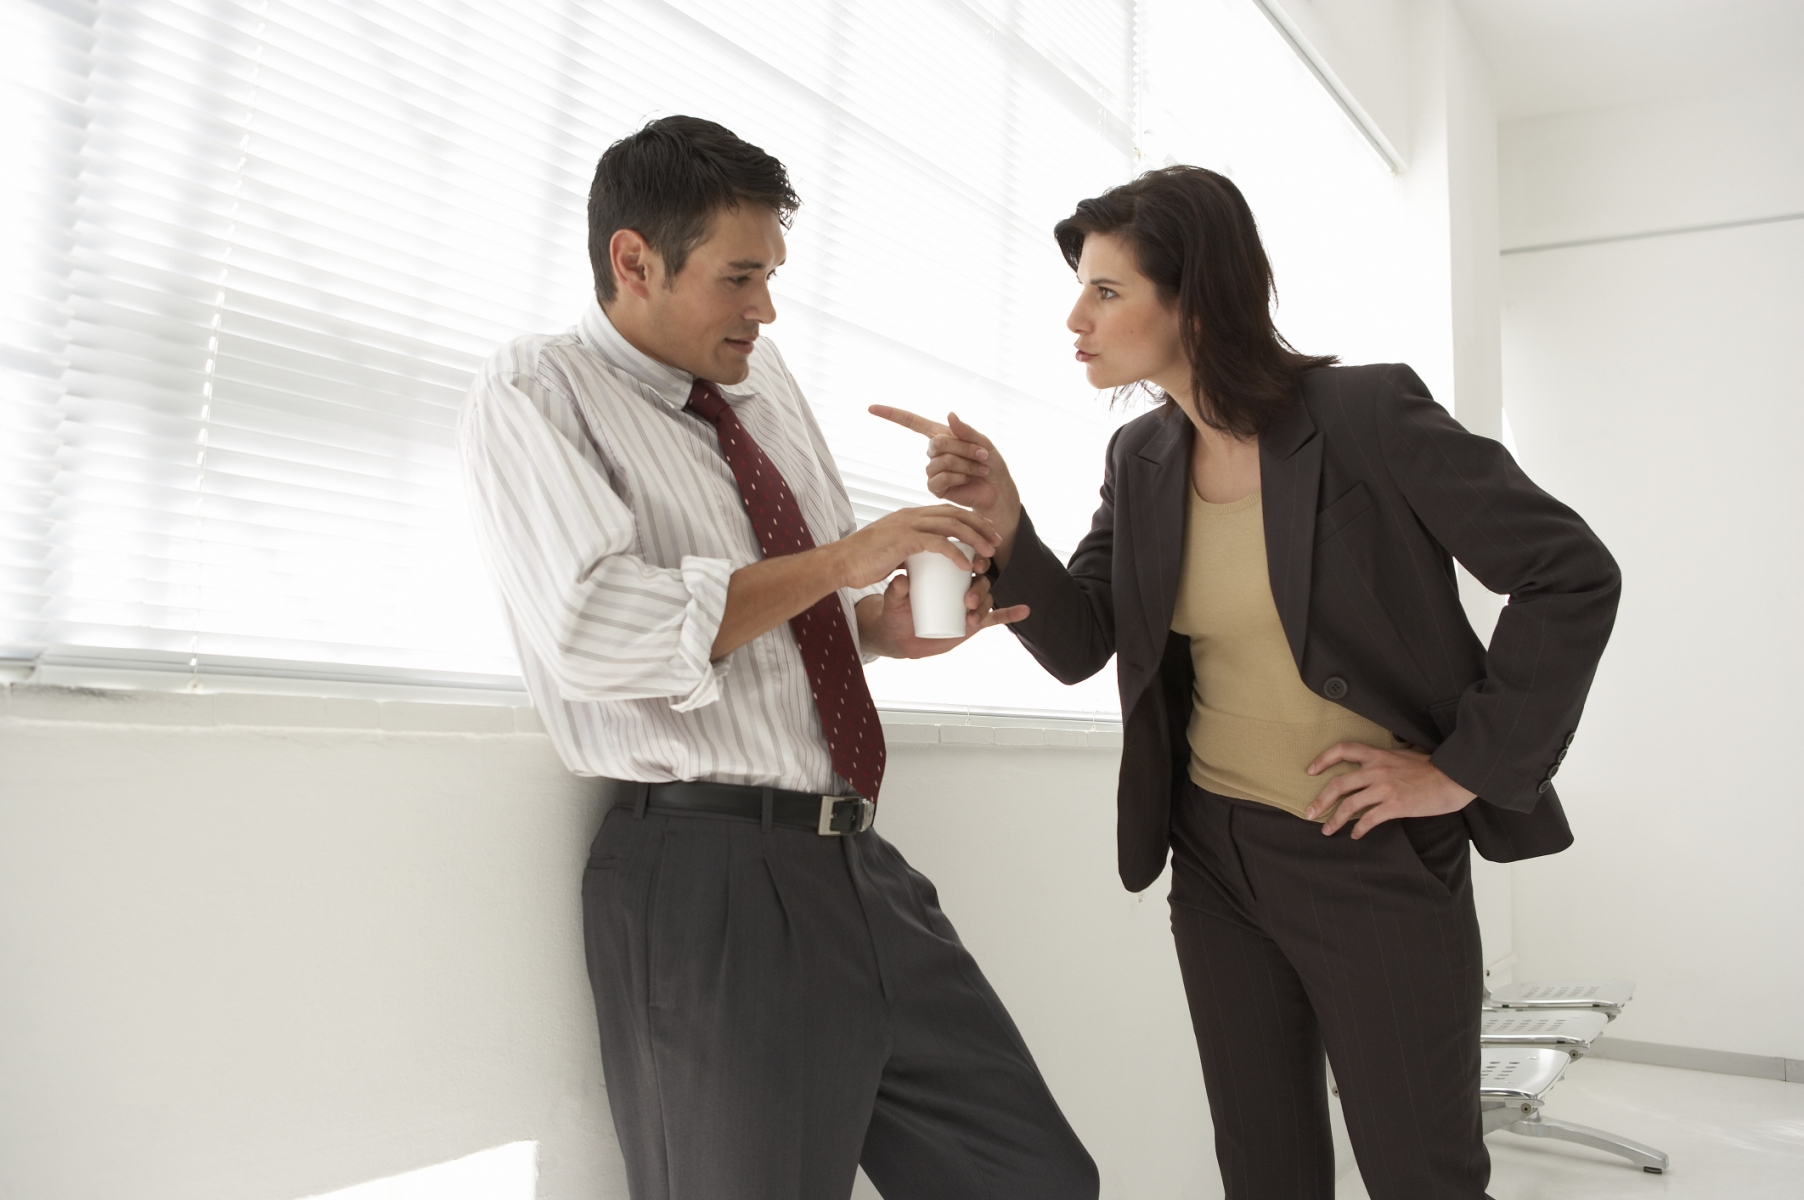 negative discipline in the workplace Negative discipline uses punishment for discipline problems for example, an employee might be suspended or fired for breaking rules personality conflicts between employee and supervisors can lead to other and more serious problems in the workplace (pulich, 1986.